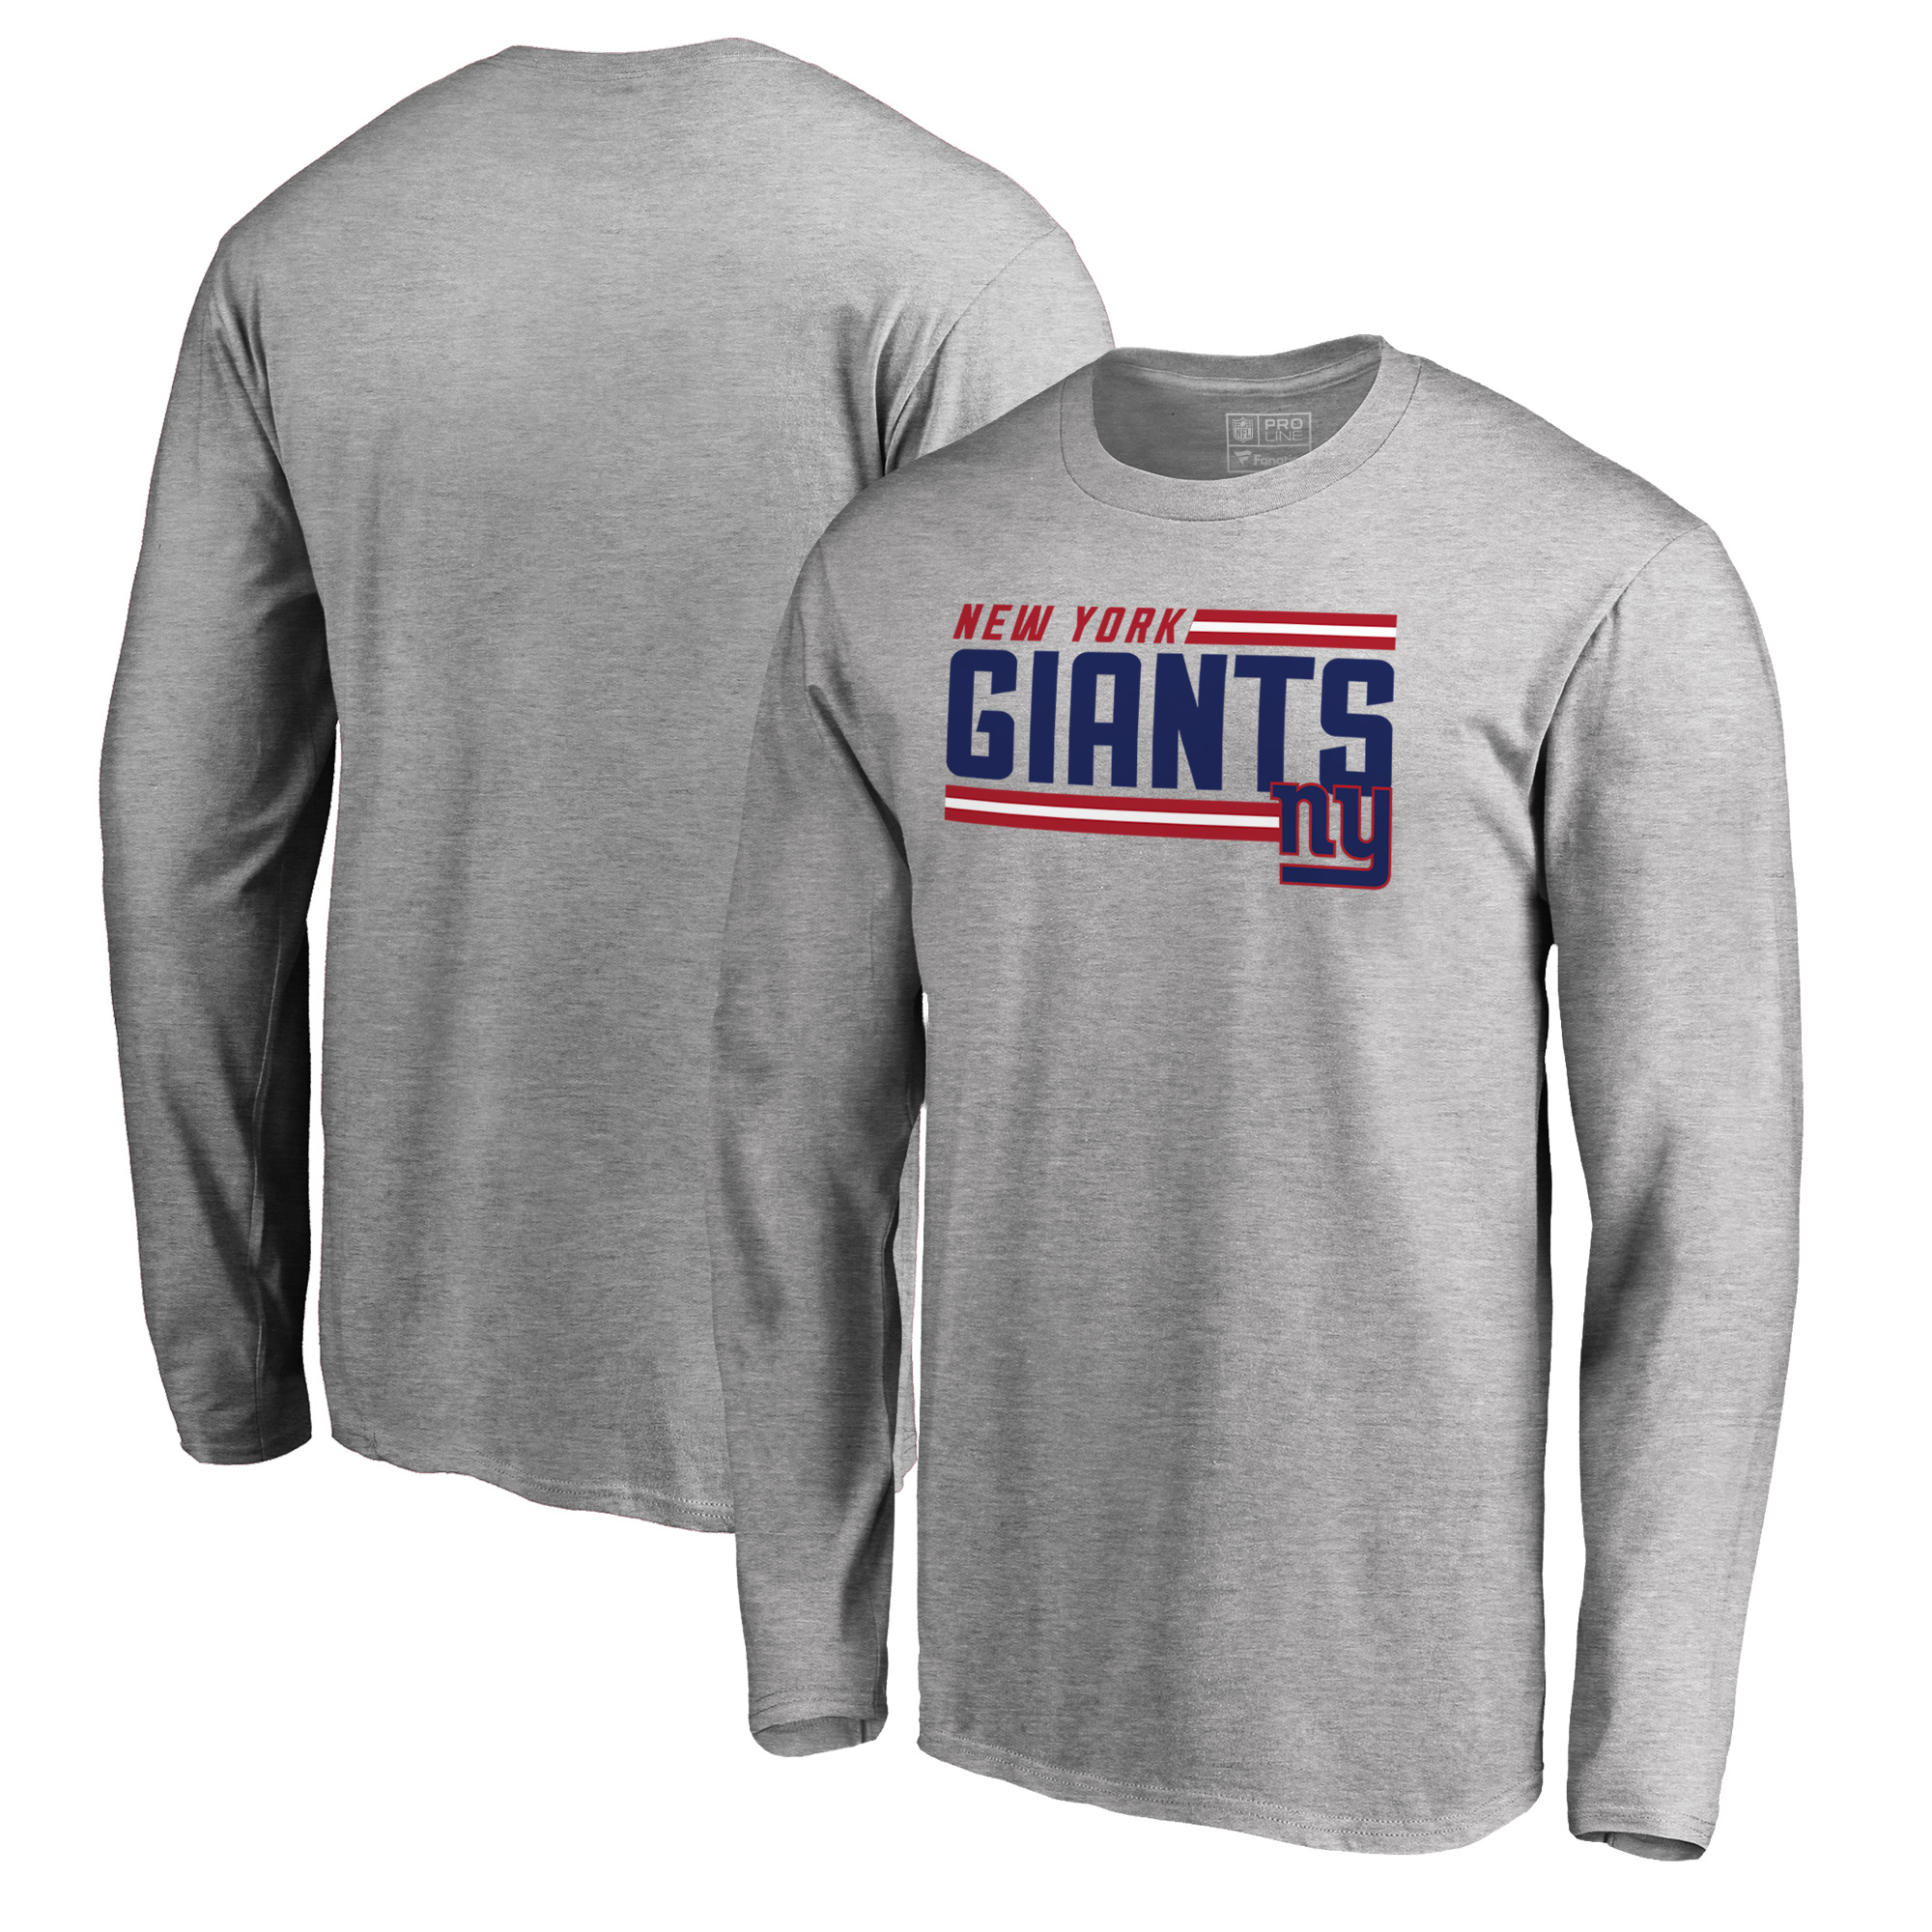 New York Giants NFL Pro Line by Fanatics Branded Iconic Collection On Side Stripe Long Sleeve T-Shirt - Ash